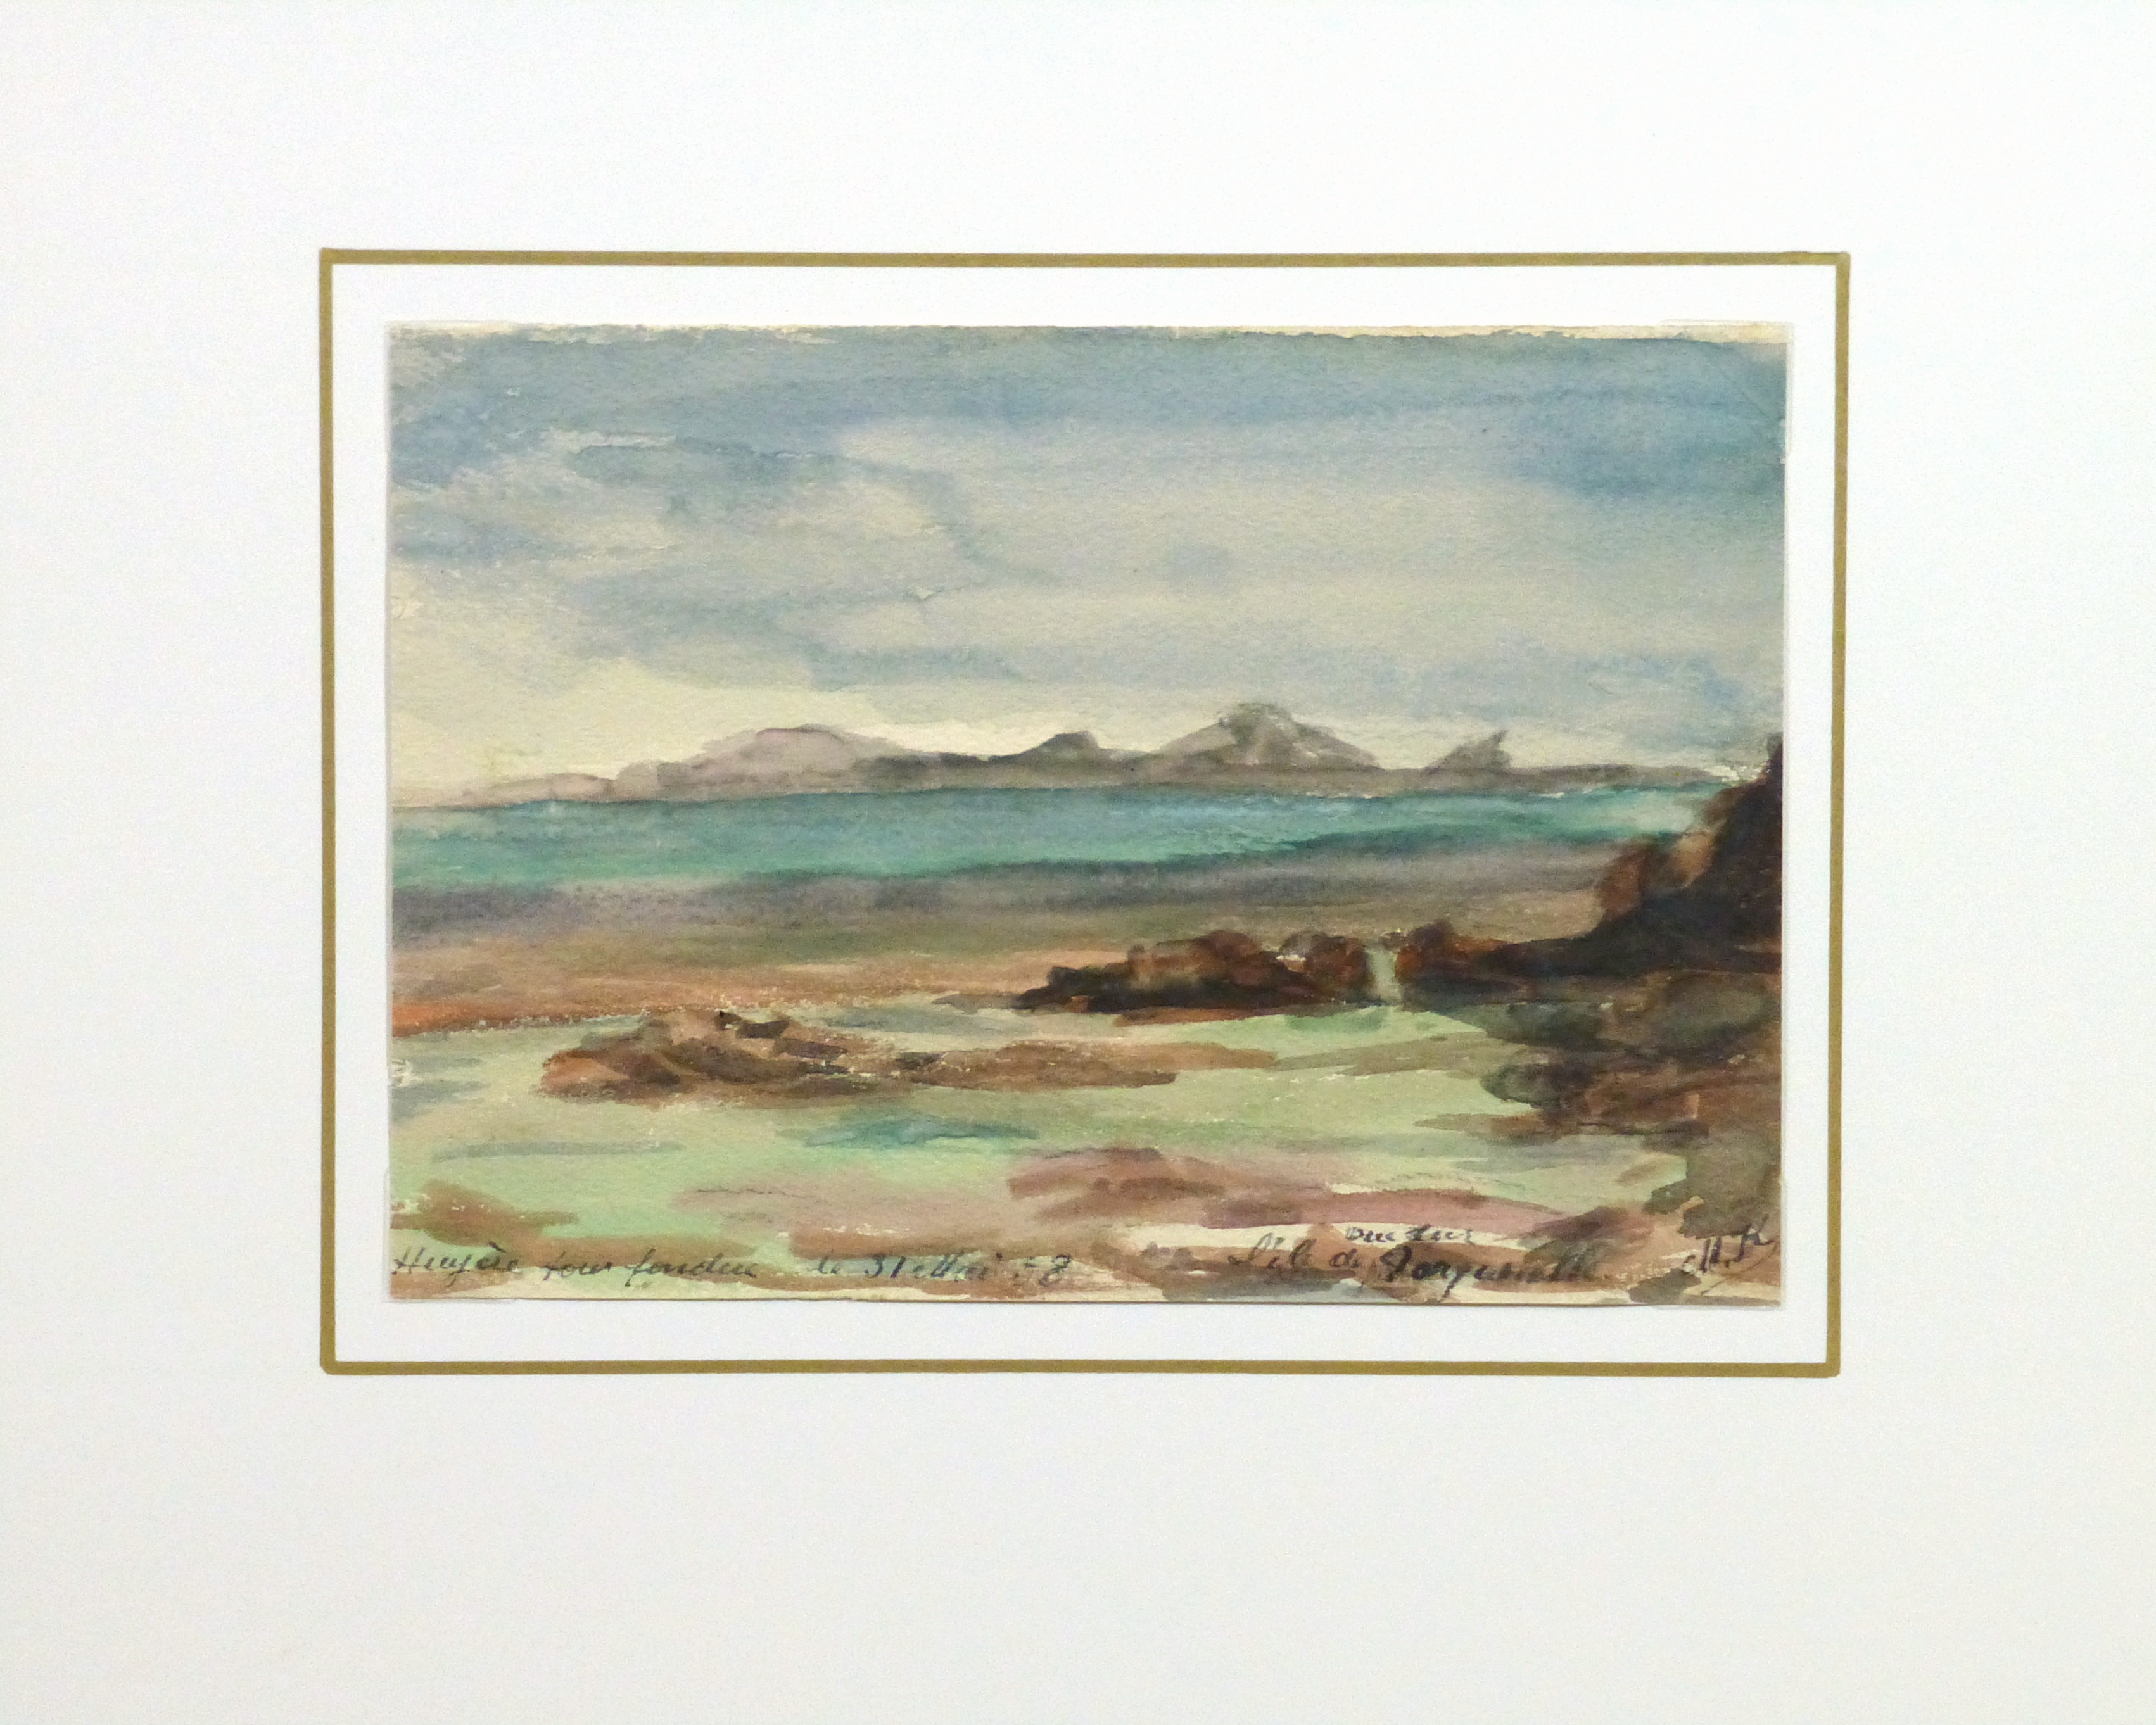 Watercolor Landscape - Tranquil Waters, 1938-matted-10634M